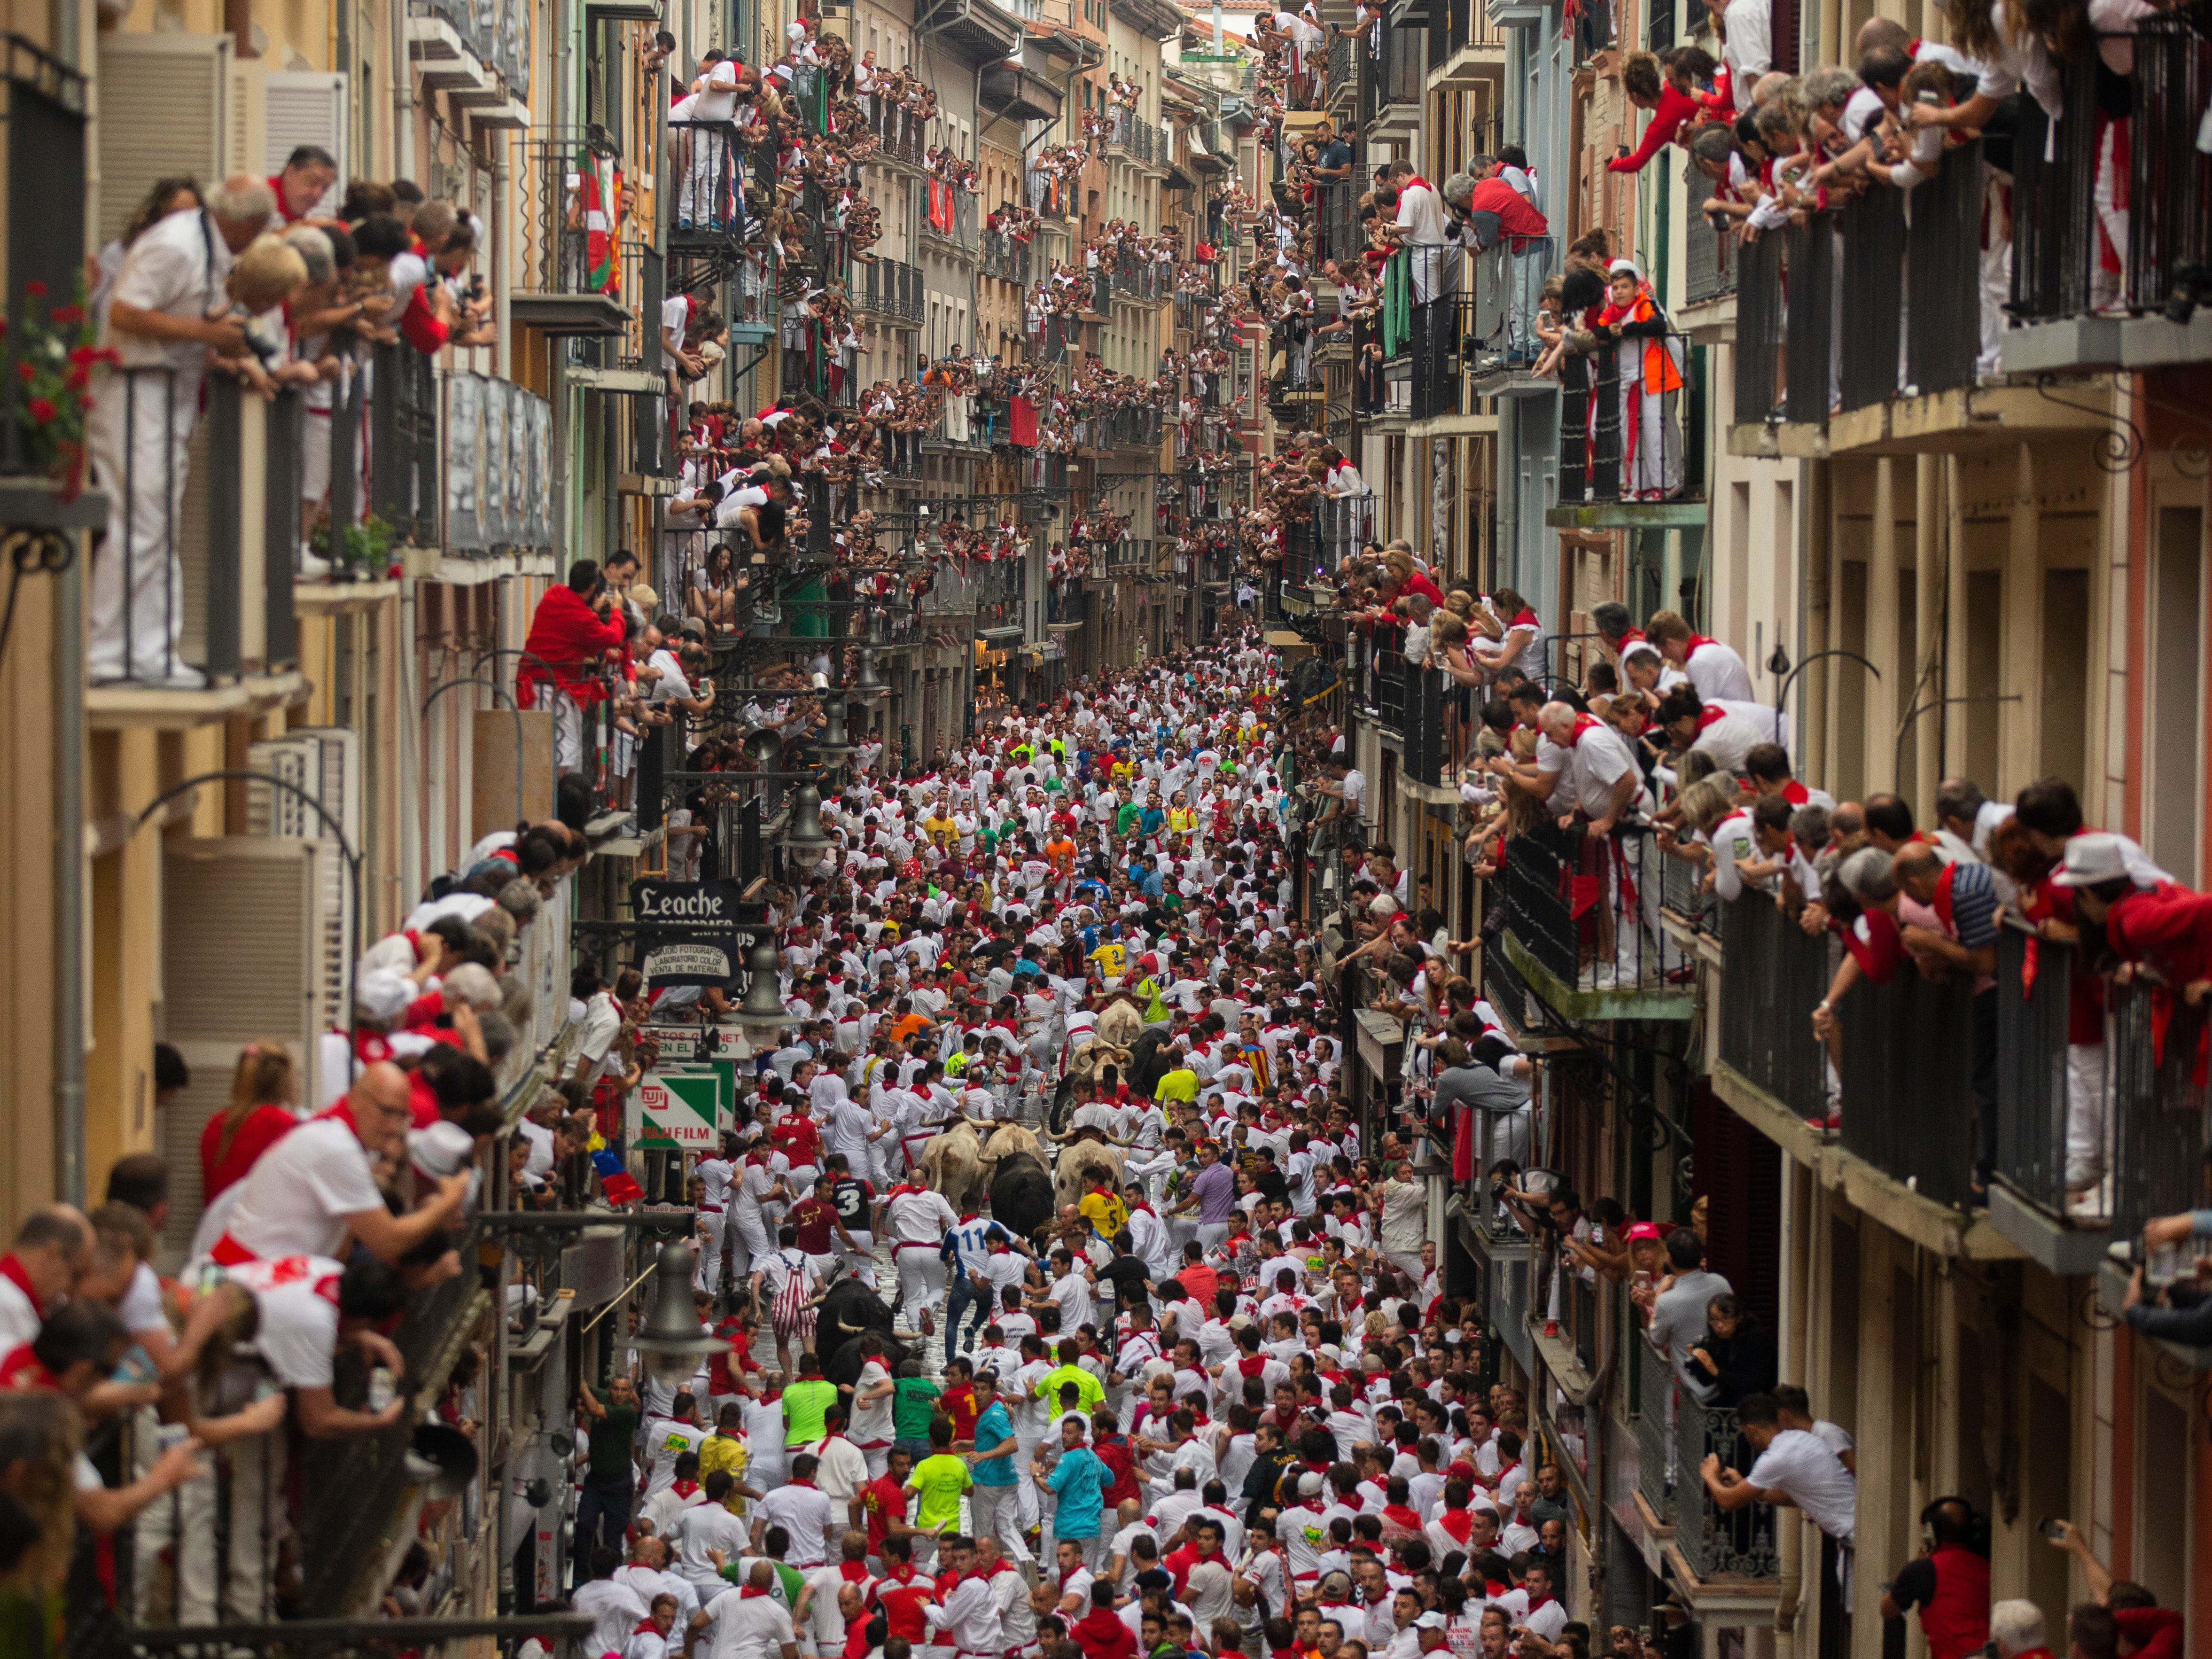 Revellers run with Puerto de San Lorenzo's fighting bulls during the second day of the San Fermin Running of the Bulls festival on July 7, 2018 in Pamplona, Spain.